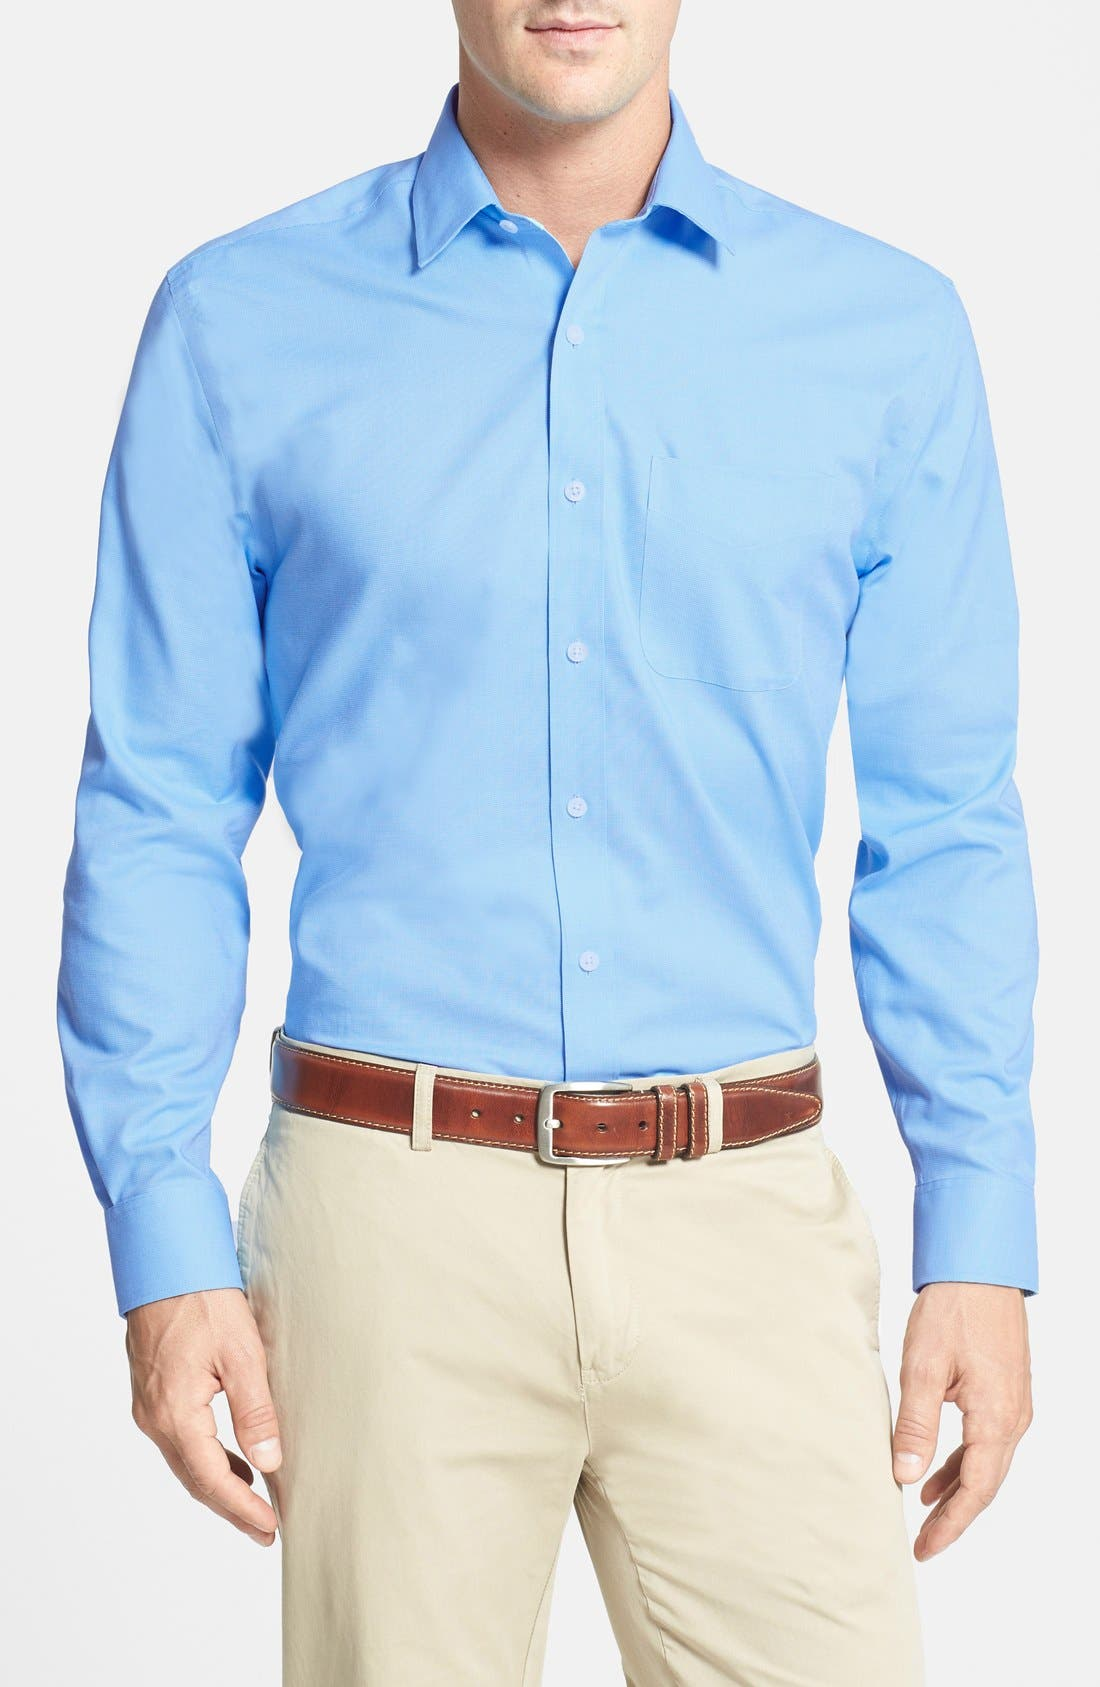 Main Image - Cutter & Buck 'Epic Easy Care' Classic Fit Wrinkle Free Sport Shirt